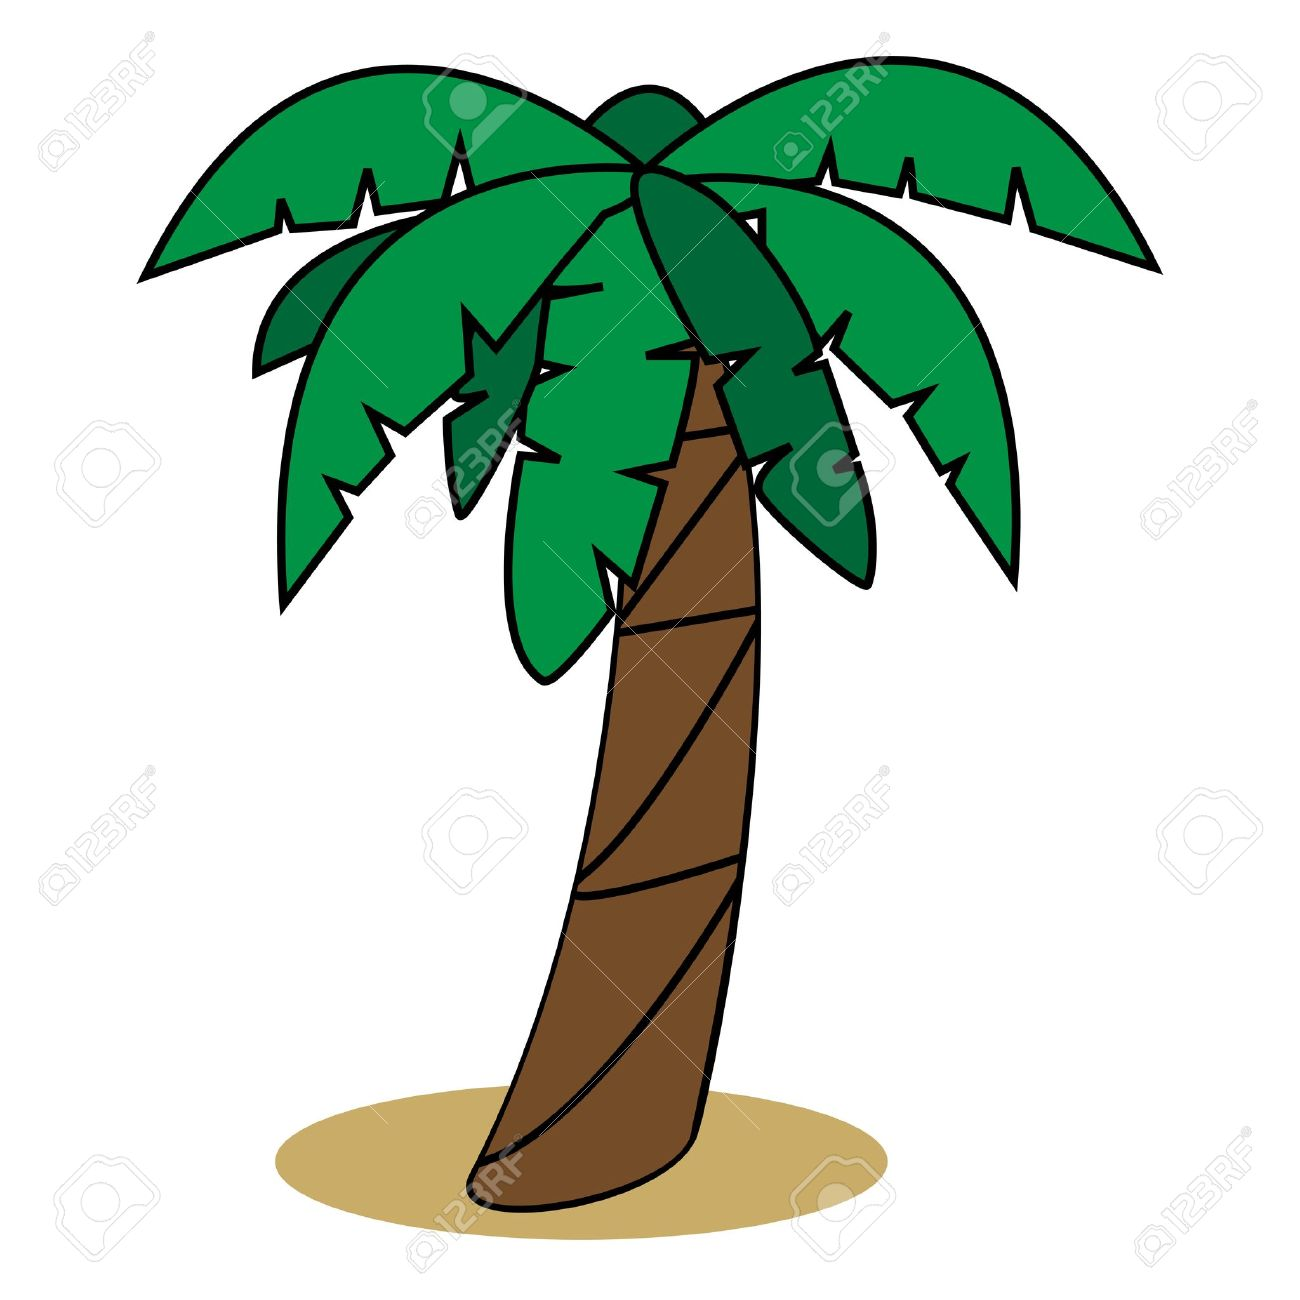 Graphic illustration of palm tree Stock Vector - 13653637